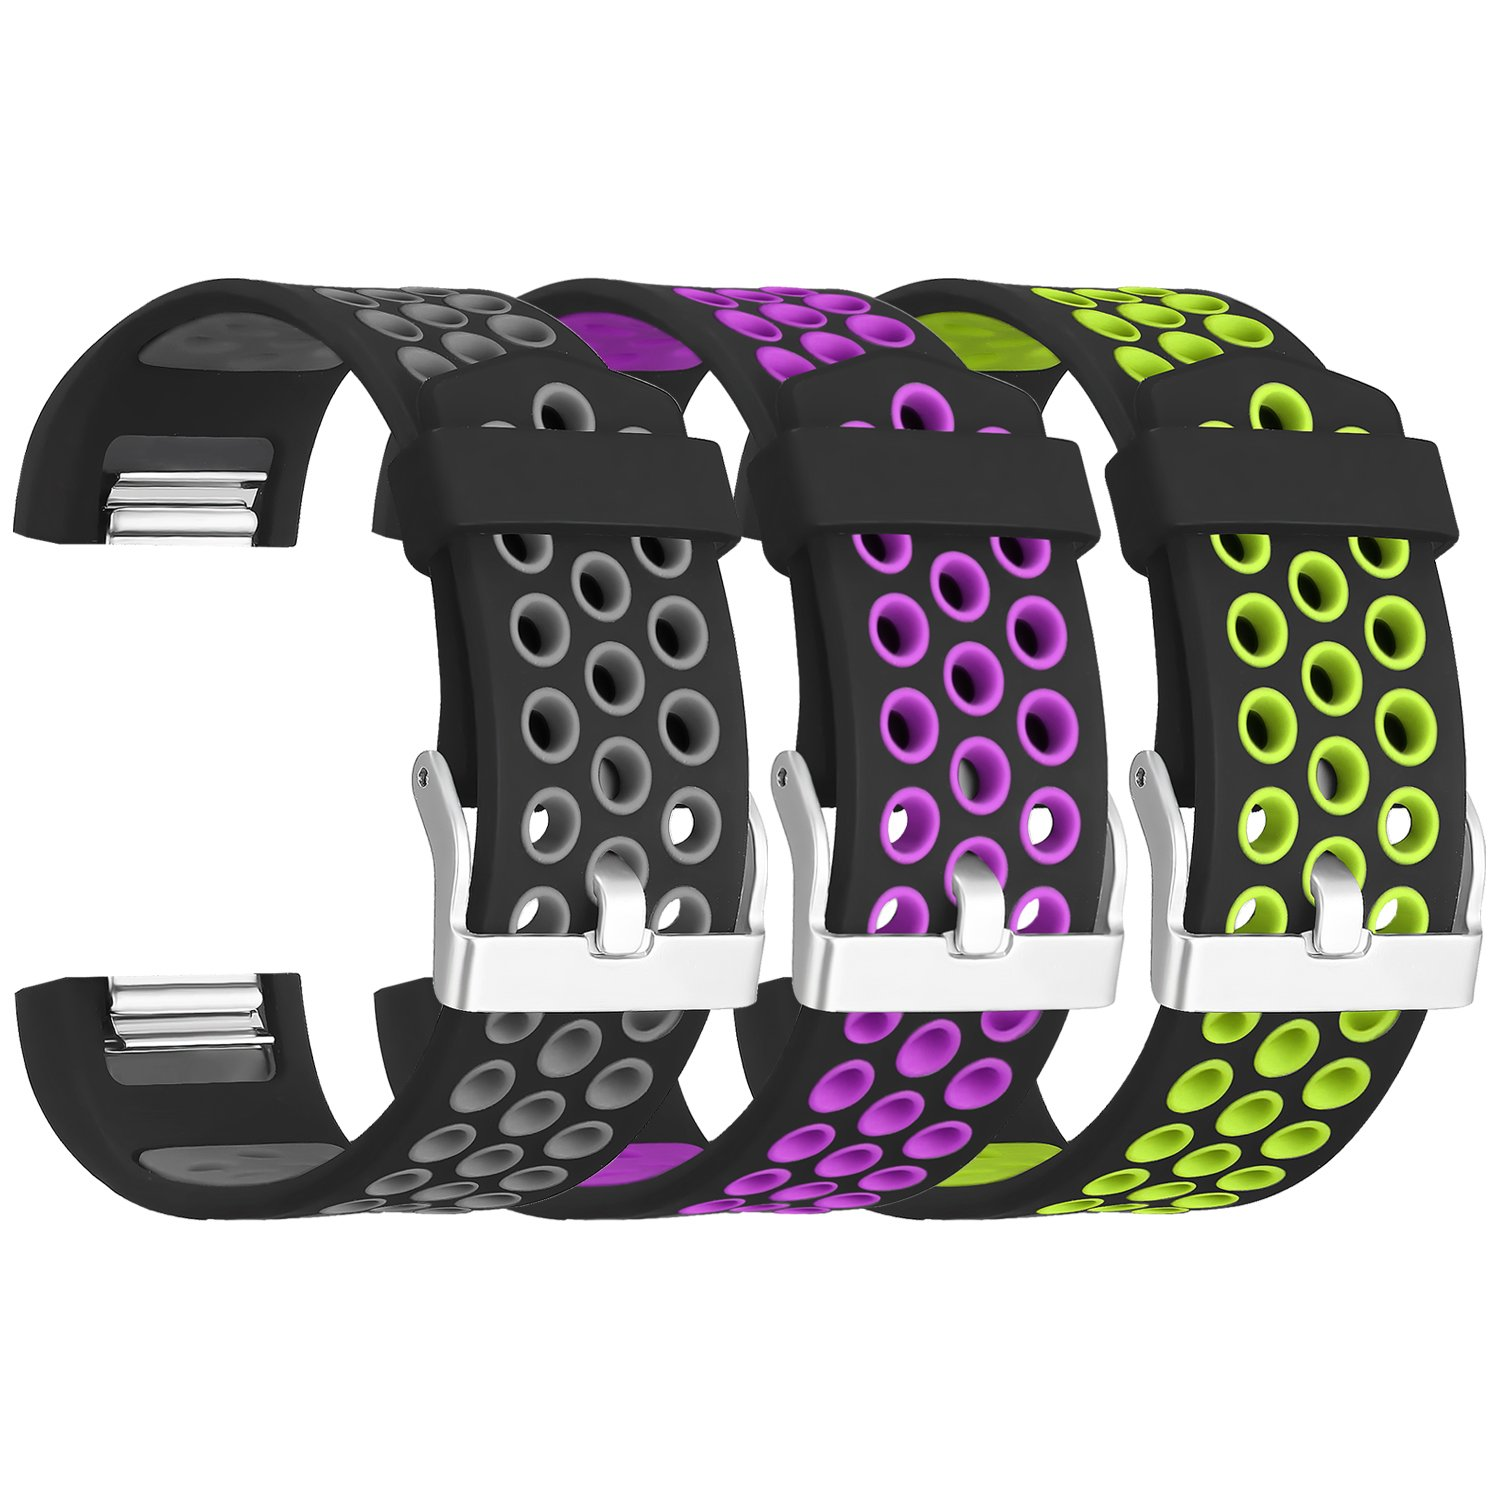 SKYLET for Fitbit Charge 2 Bands, 3 Pack Breathable Silicone Replacement Bands for Fitbit Charge 2 with Secure Watch Clasp (No Tracker)[Small, 3PC: Black-Gray&Black-Purple&Black-Green] by SKYLET